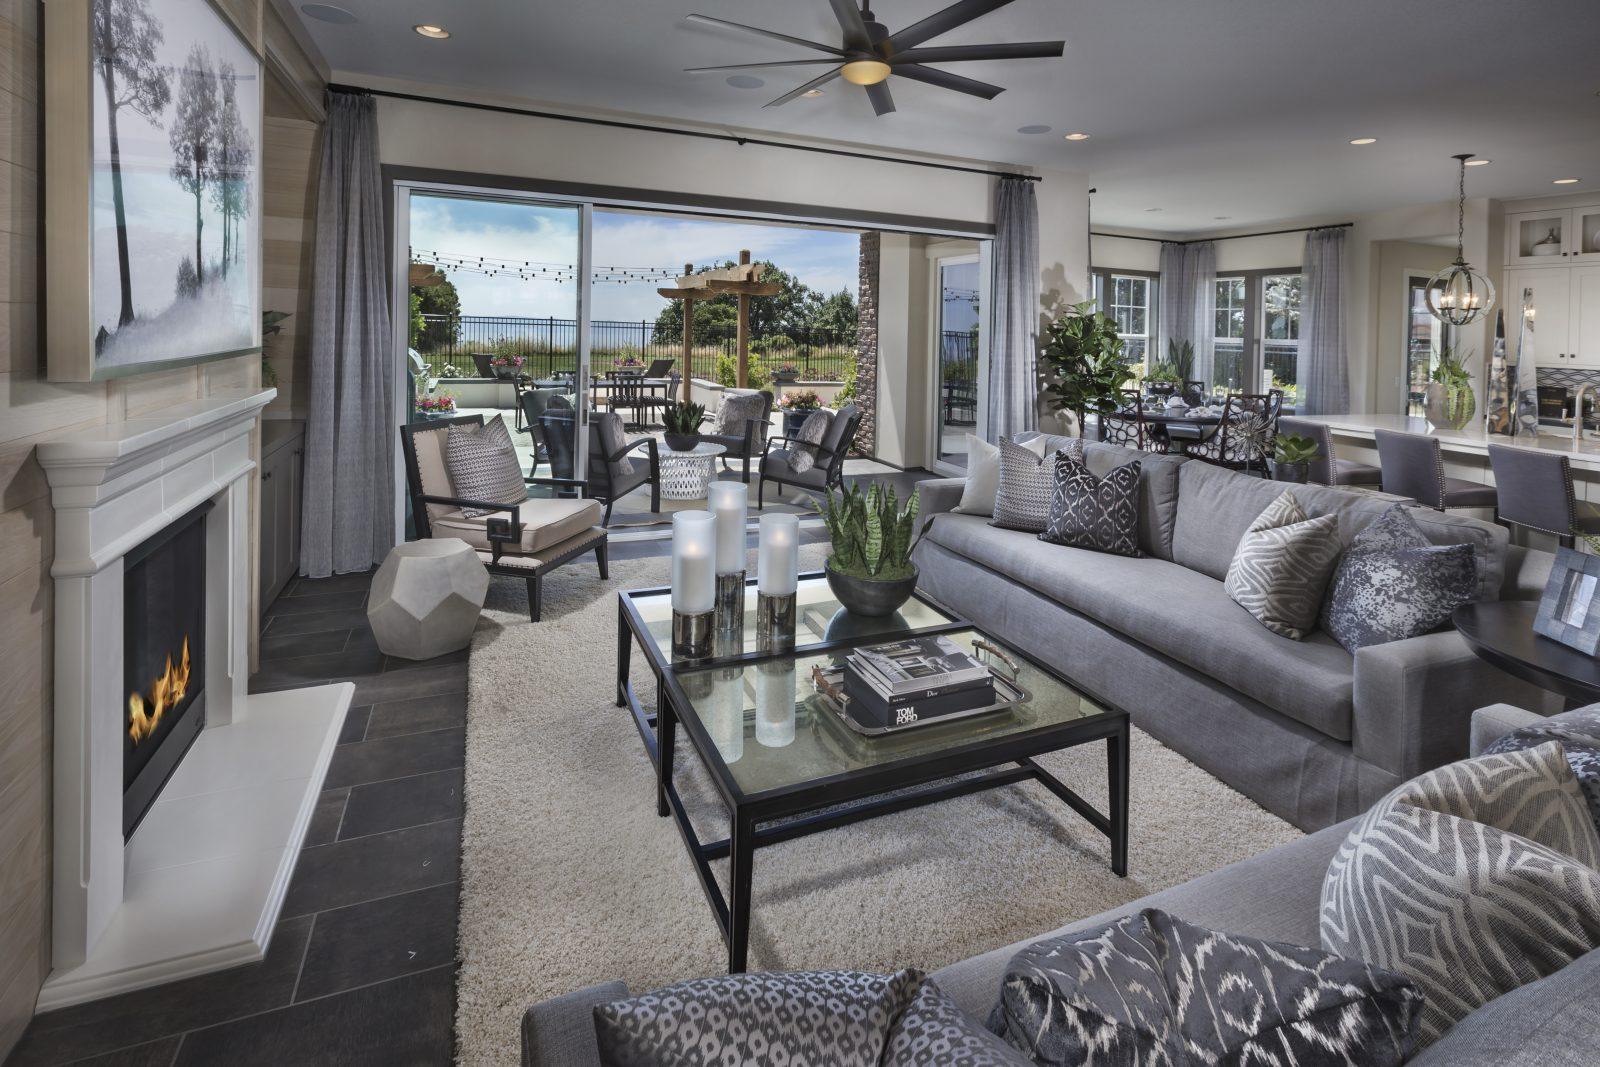 Living room to kitchen in new luxury home | Crown Point at Stonebrae in Hayward, CA | Brookfield Residential